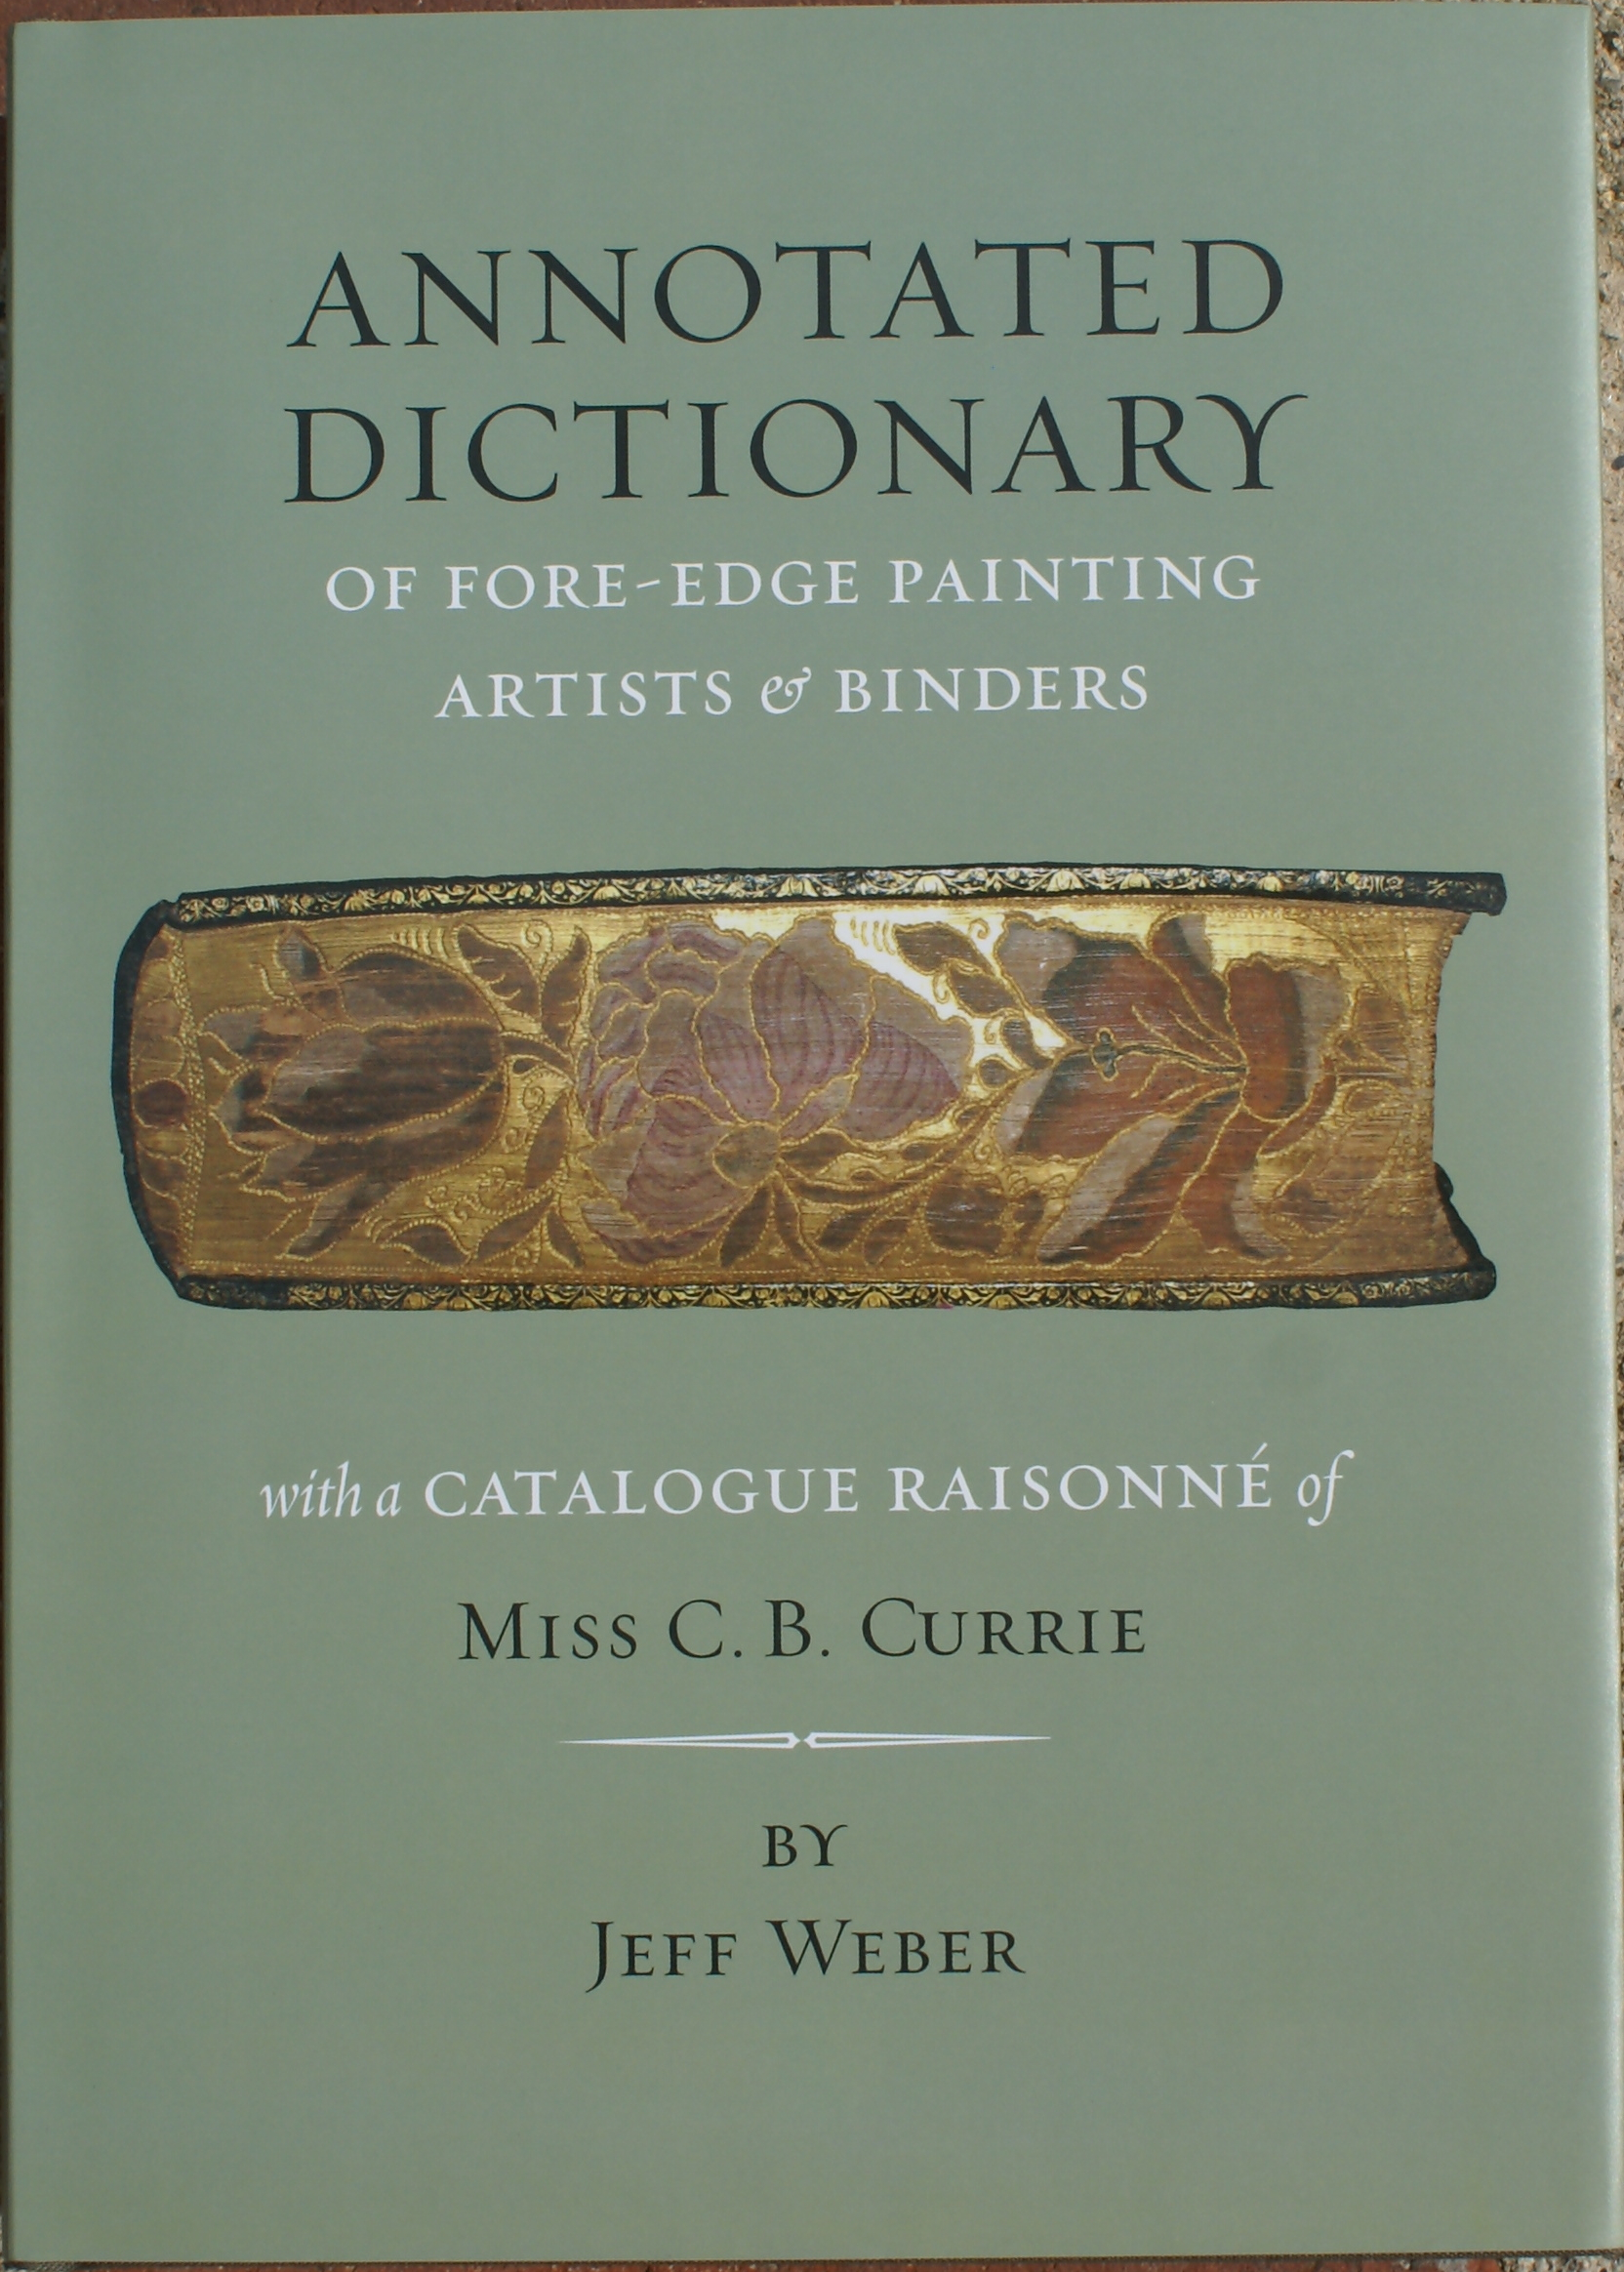 Image for An Annotated Dictionary of Fore-edge Painting Artists & Binders (Mostly English & American). The Fore-edge Paintings of Miss C. B. Currie; with a Catalogue Raisonné.